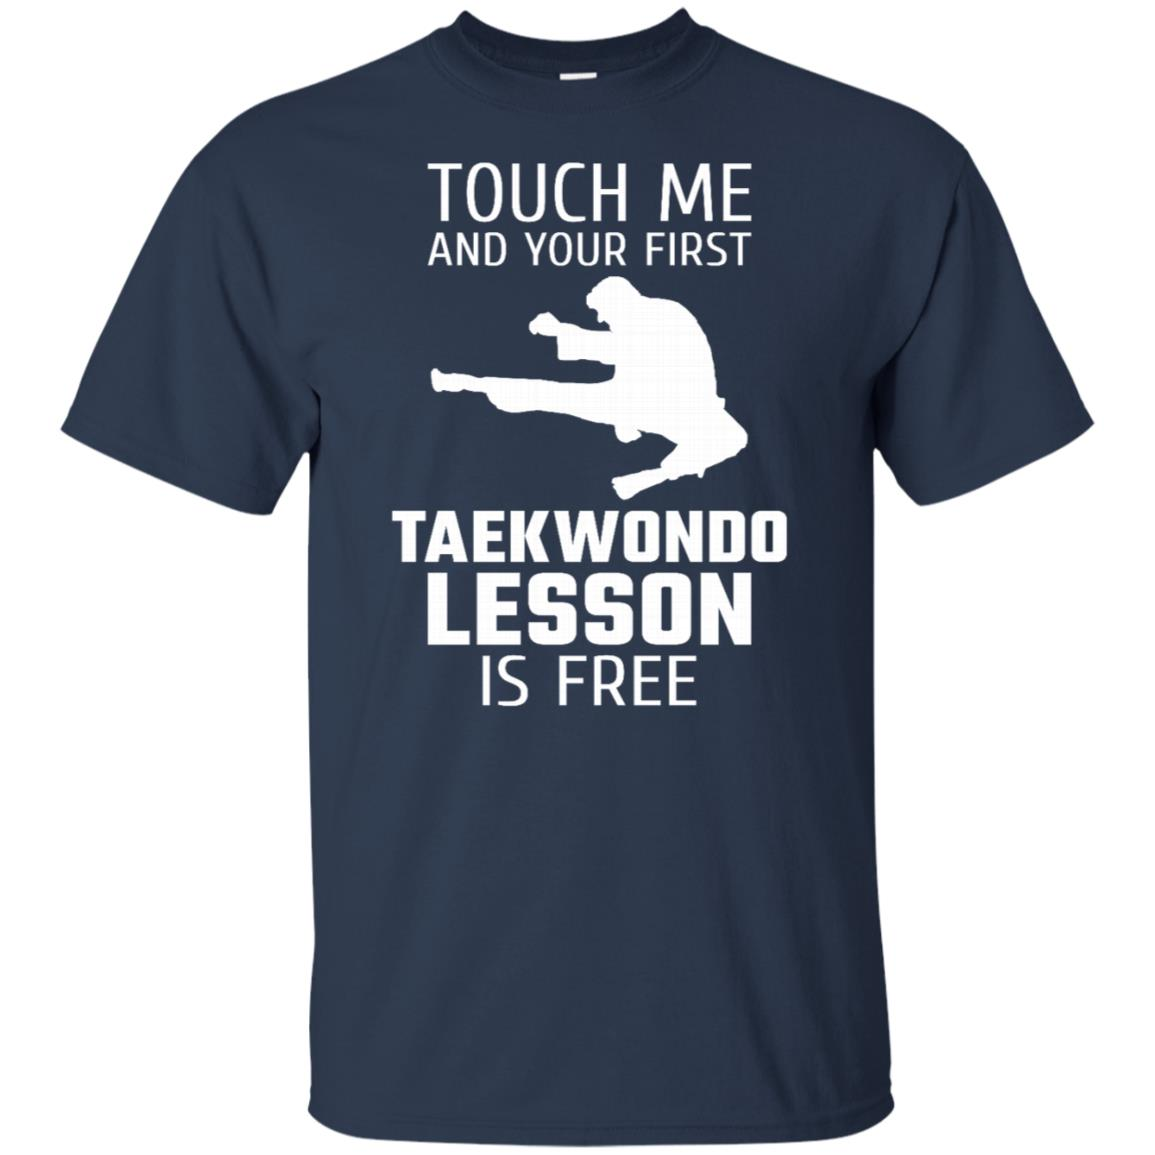 Touch Me And Your First Taekwondo Lesson Is Free Unisex Short Sleeve